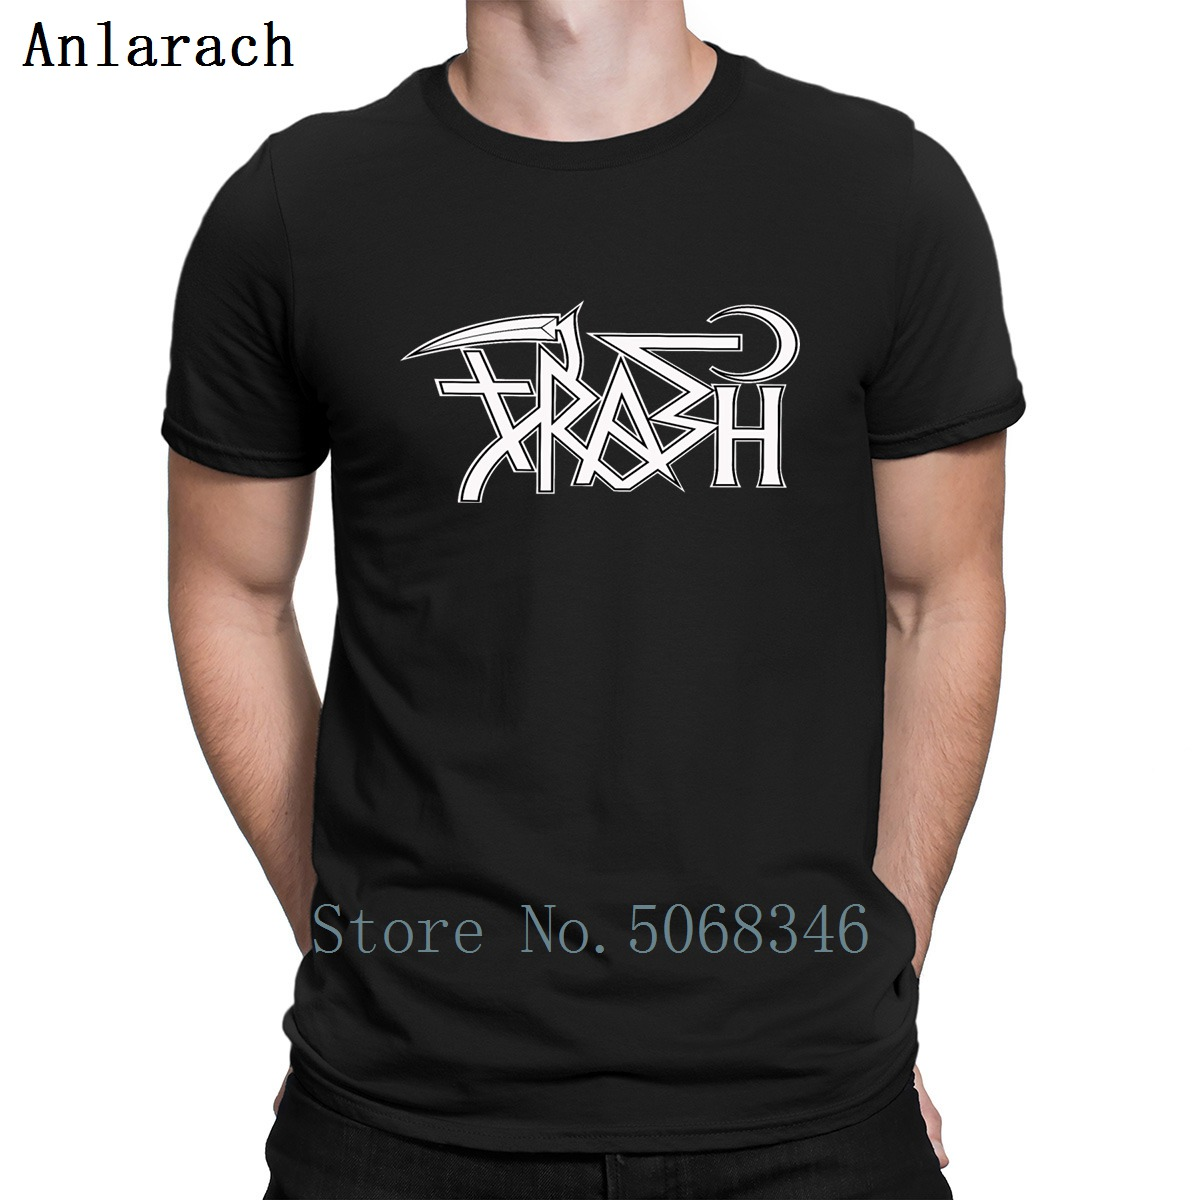 Trash Gang T Shirt Spring Gents Personalized Plus Size 3xl Funny Casual Interesting Formal Tee Shirt Shirt